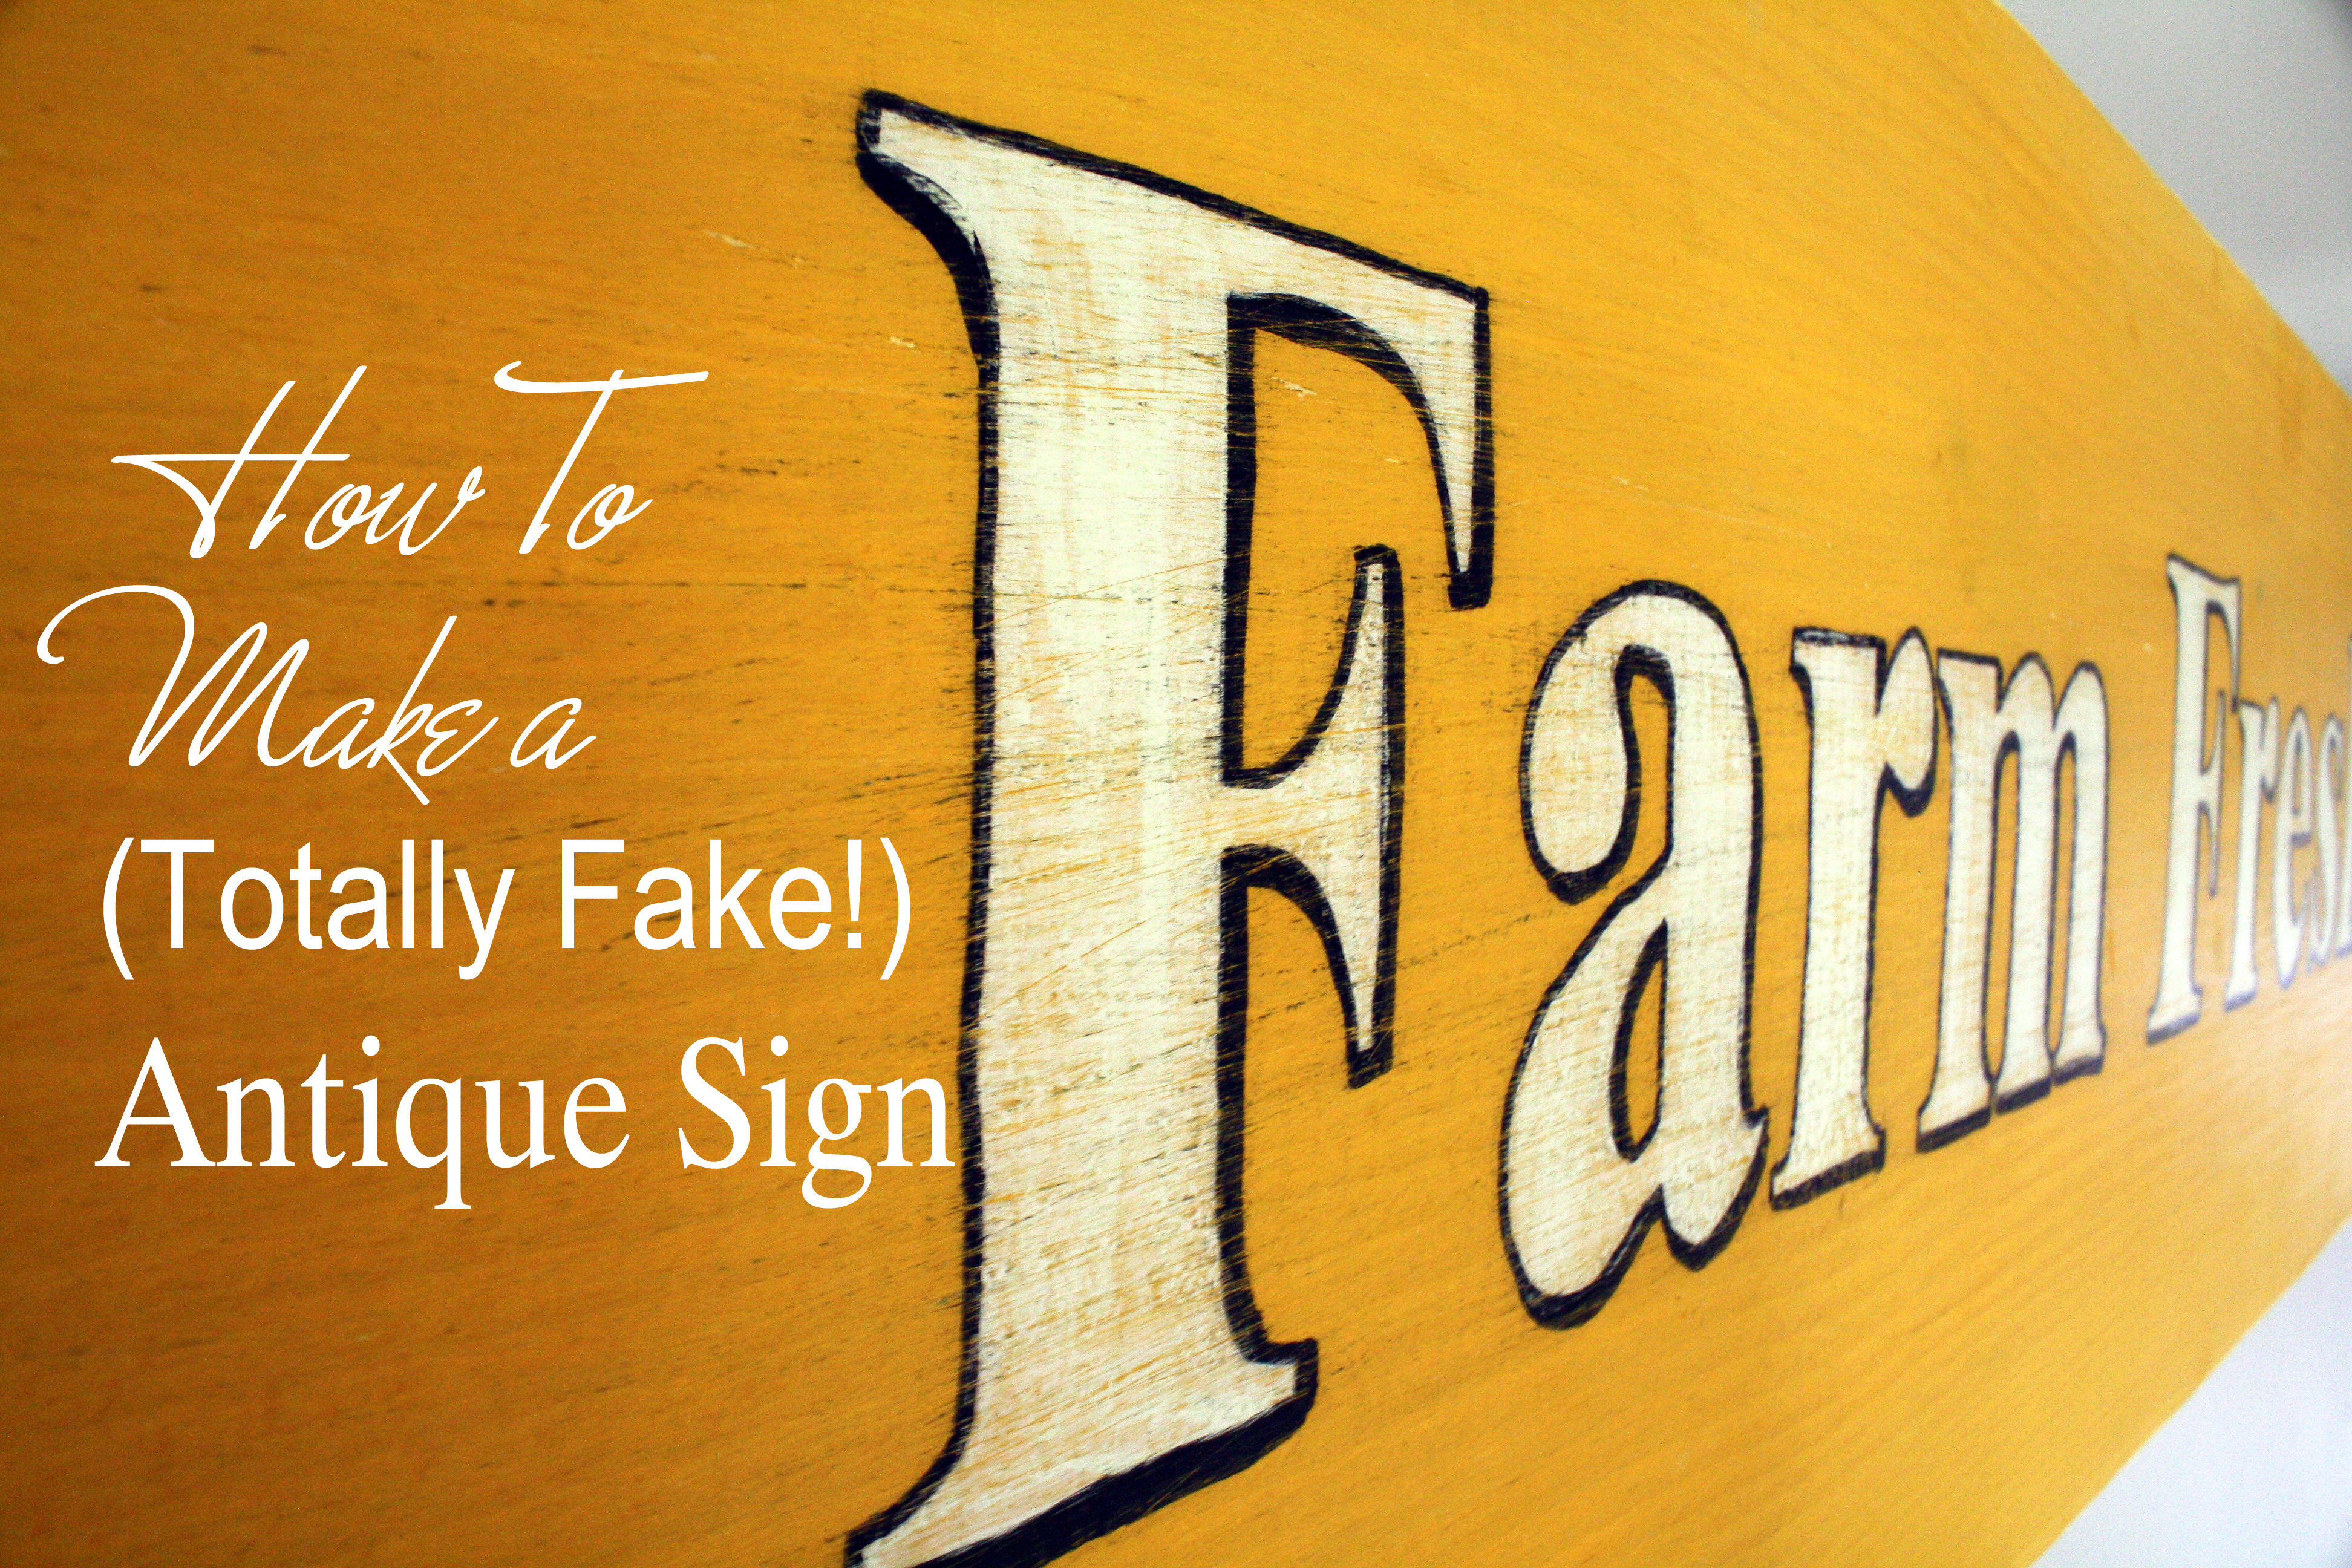 How to Make a (Totally Fake) Antique Sign: 10 Steps (with Pictures)